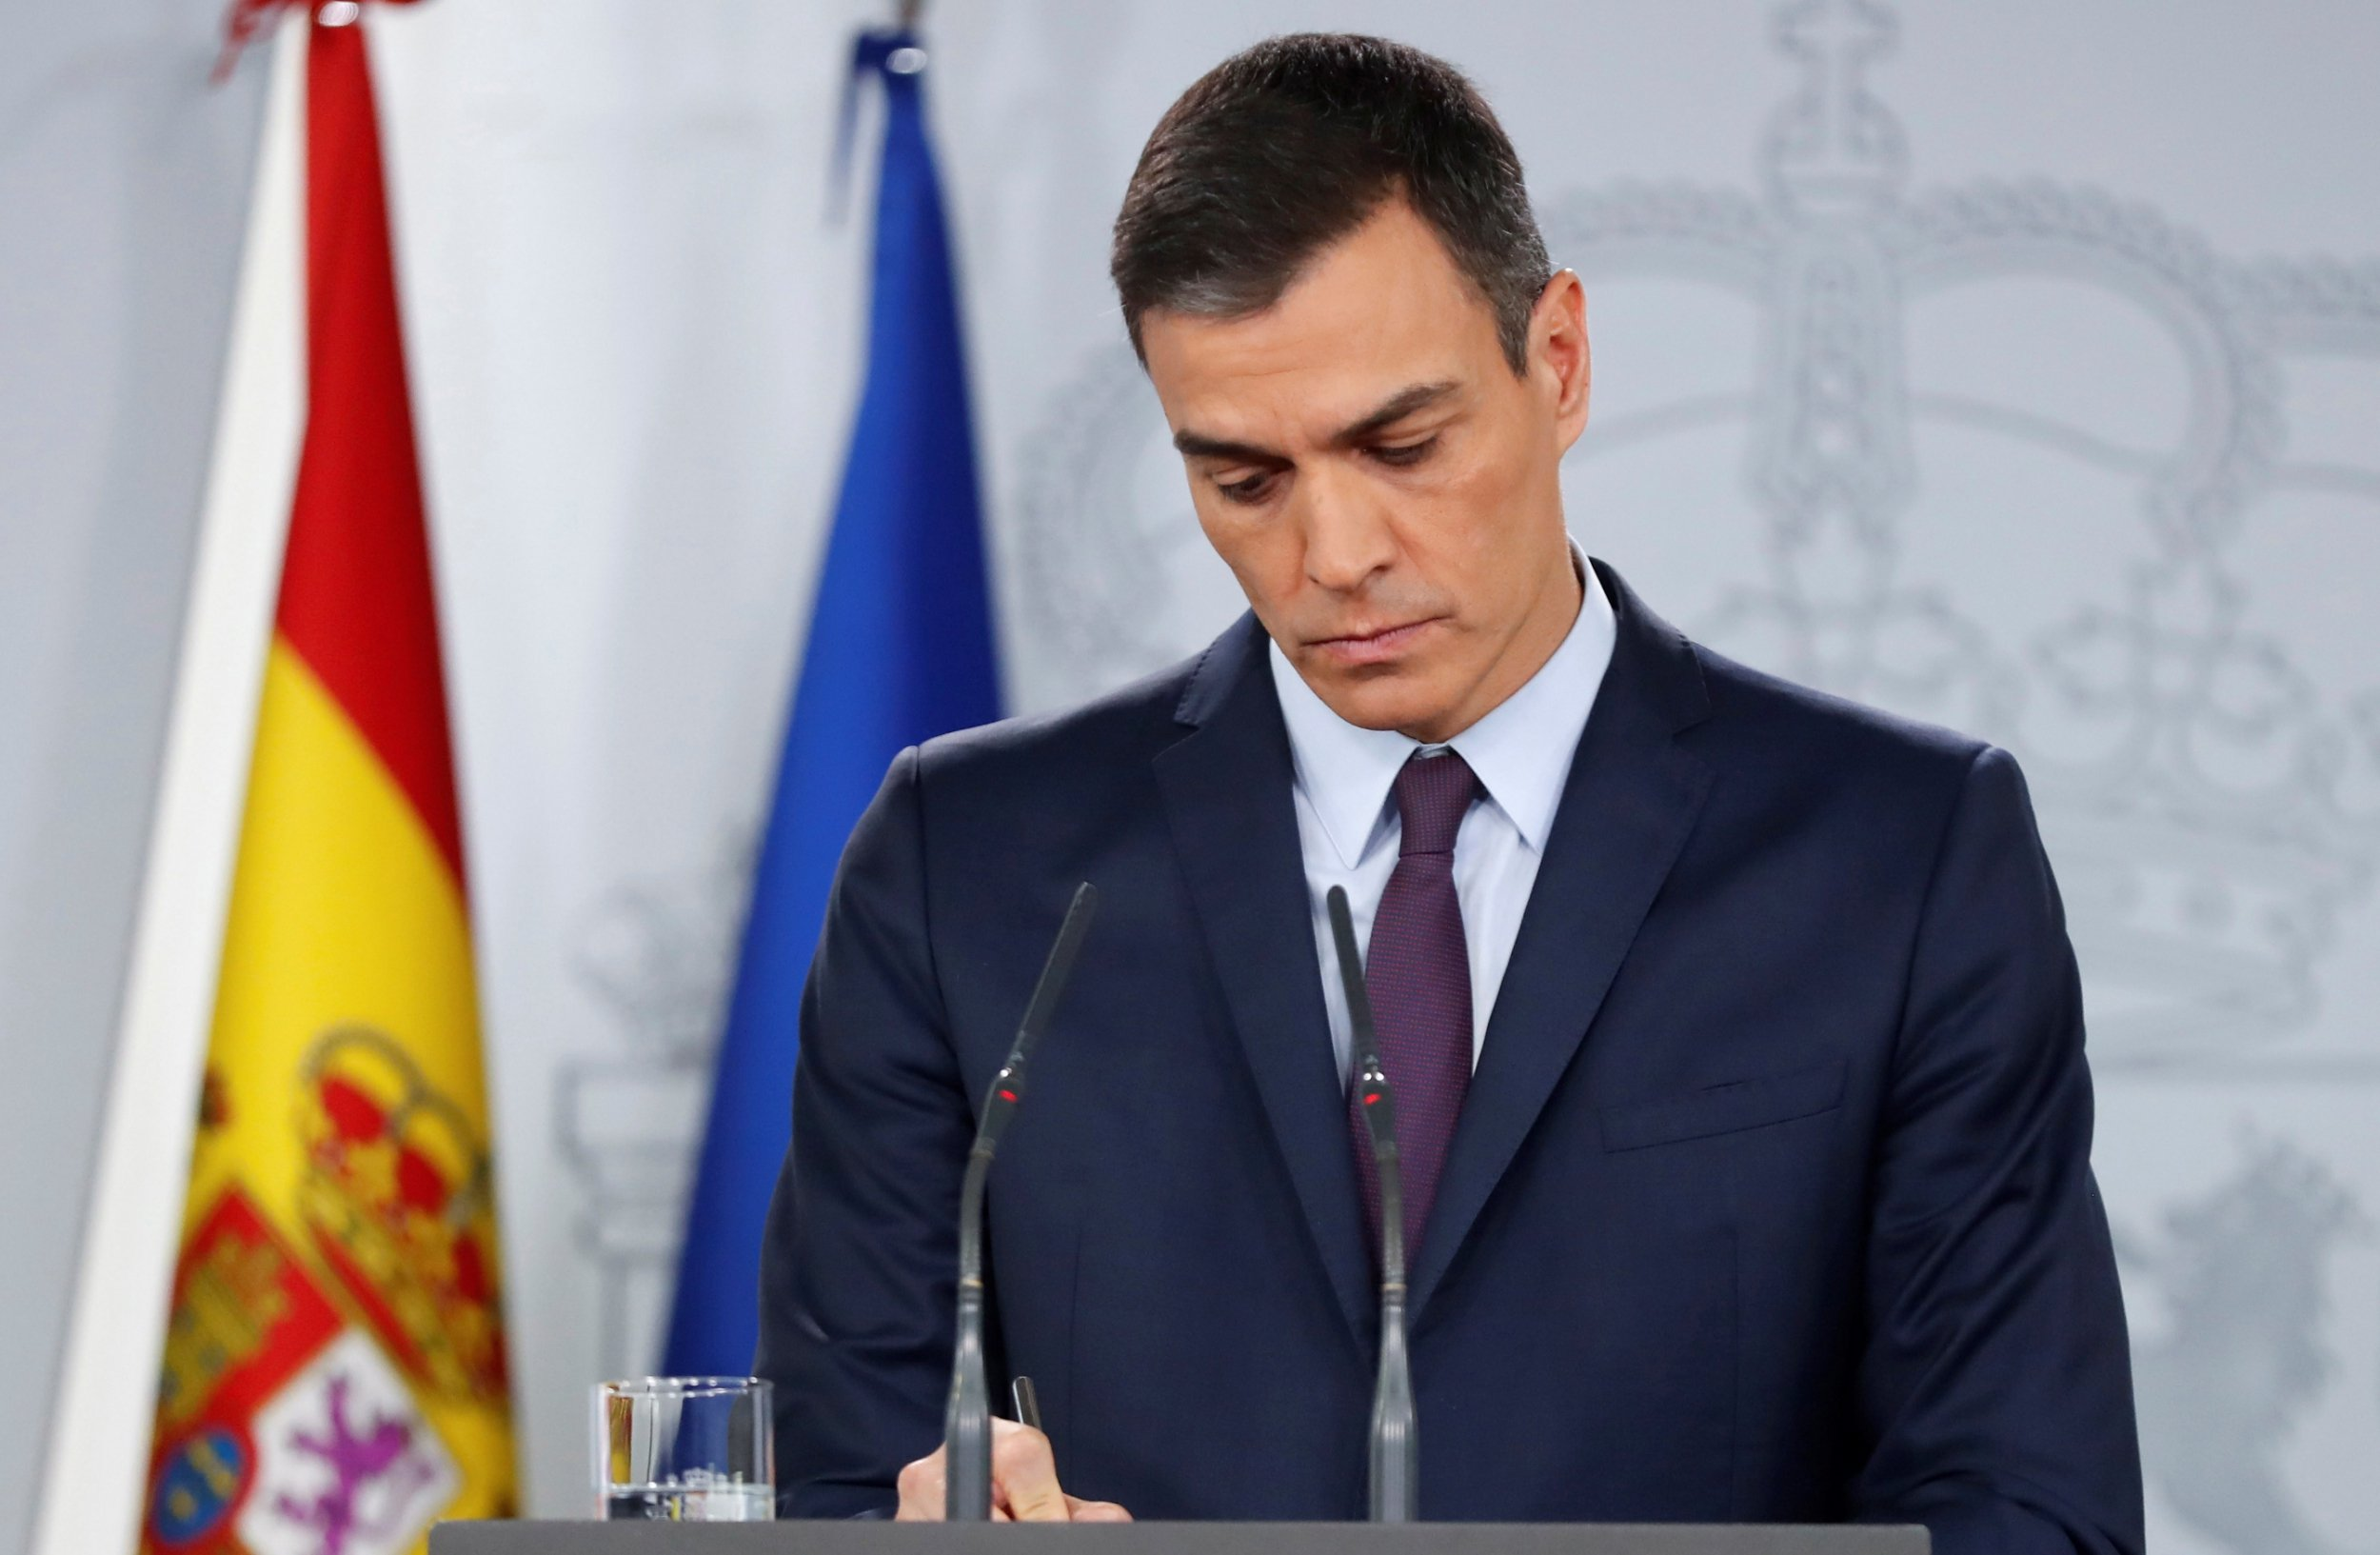 Prime Minister of Spain Pedro Sánchez announces snap elections amidst growing division in the government ( Image )